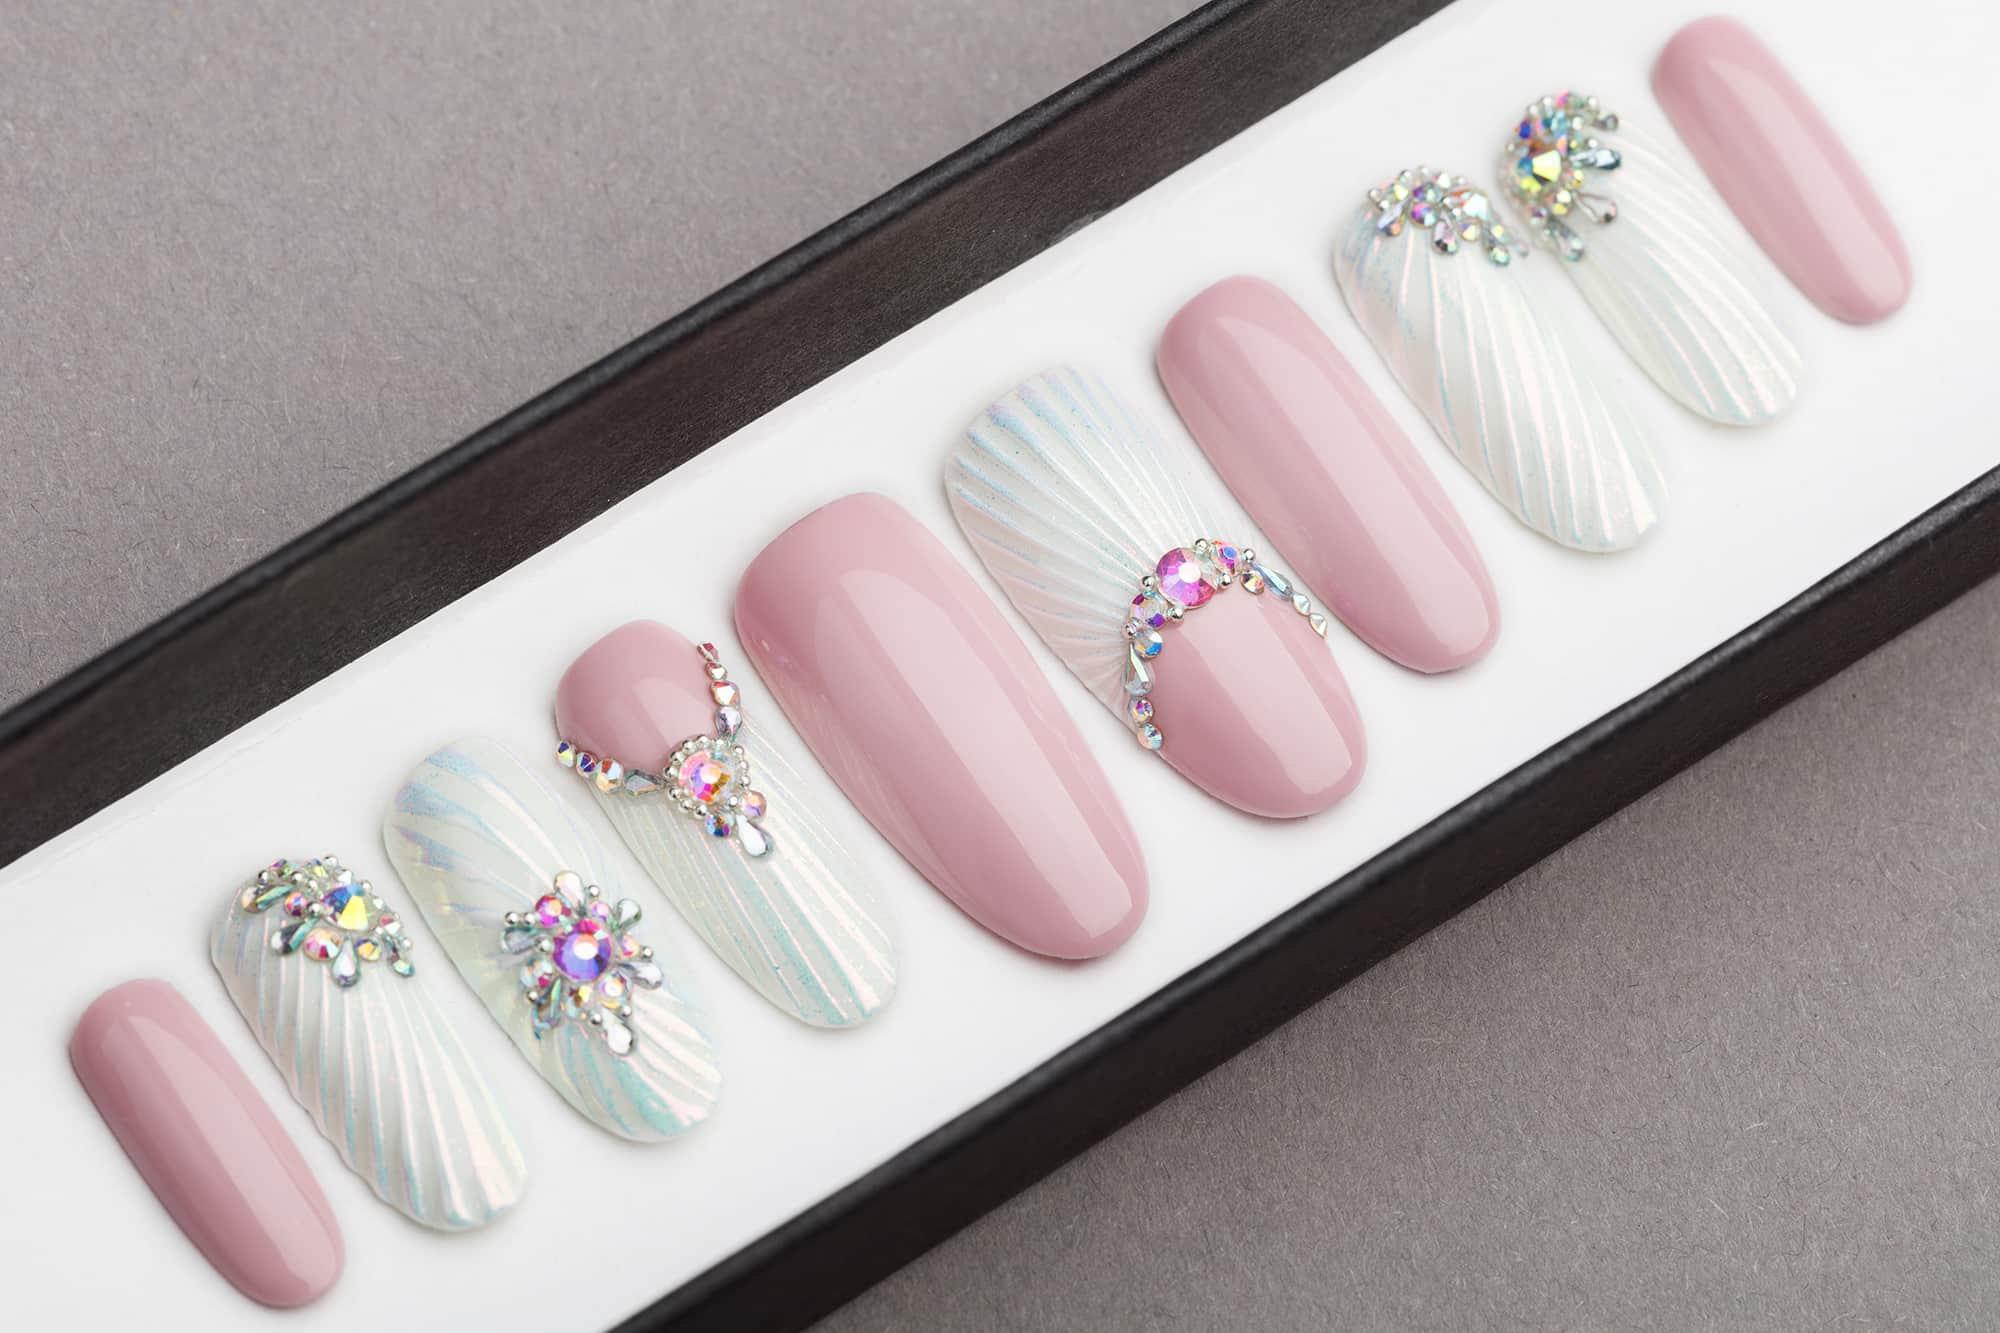 Snow Pearl Press on Nails with Swarovski Crystals | Wedding nails | Hand painted Nail Art | Fake Nails | False Nails |